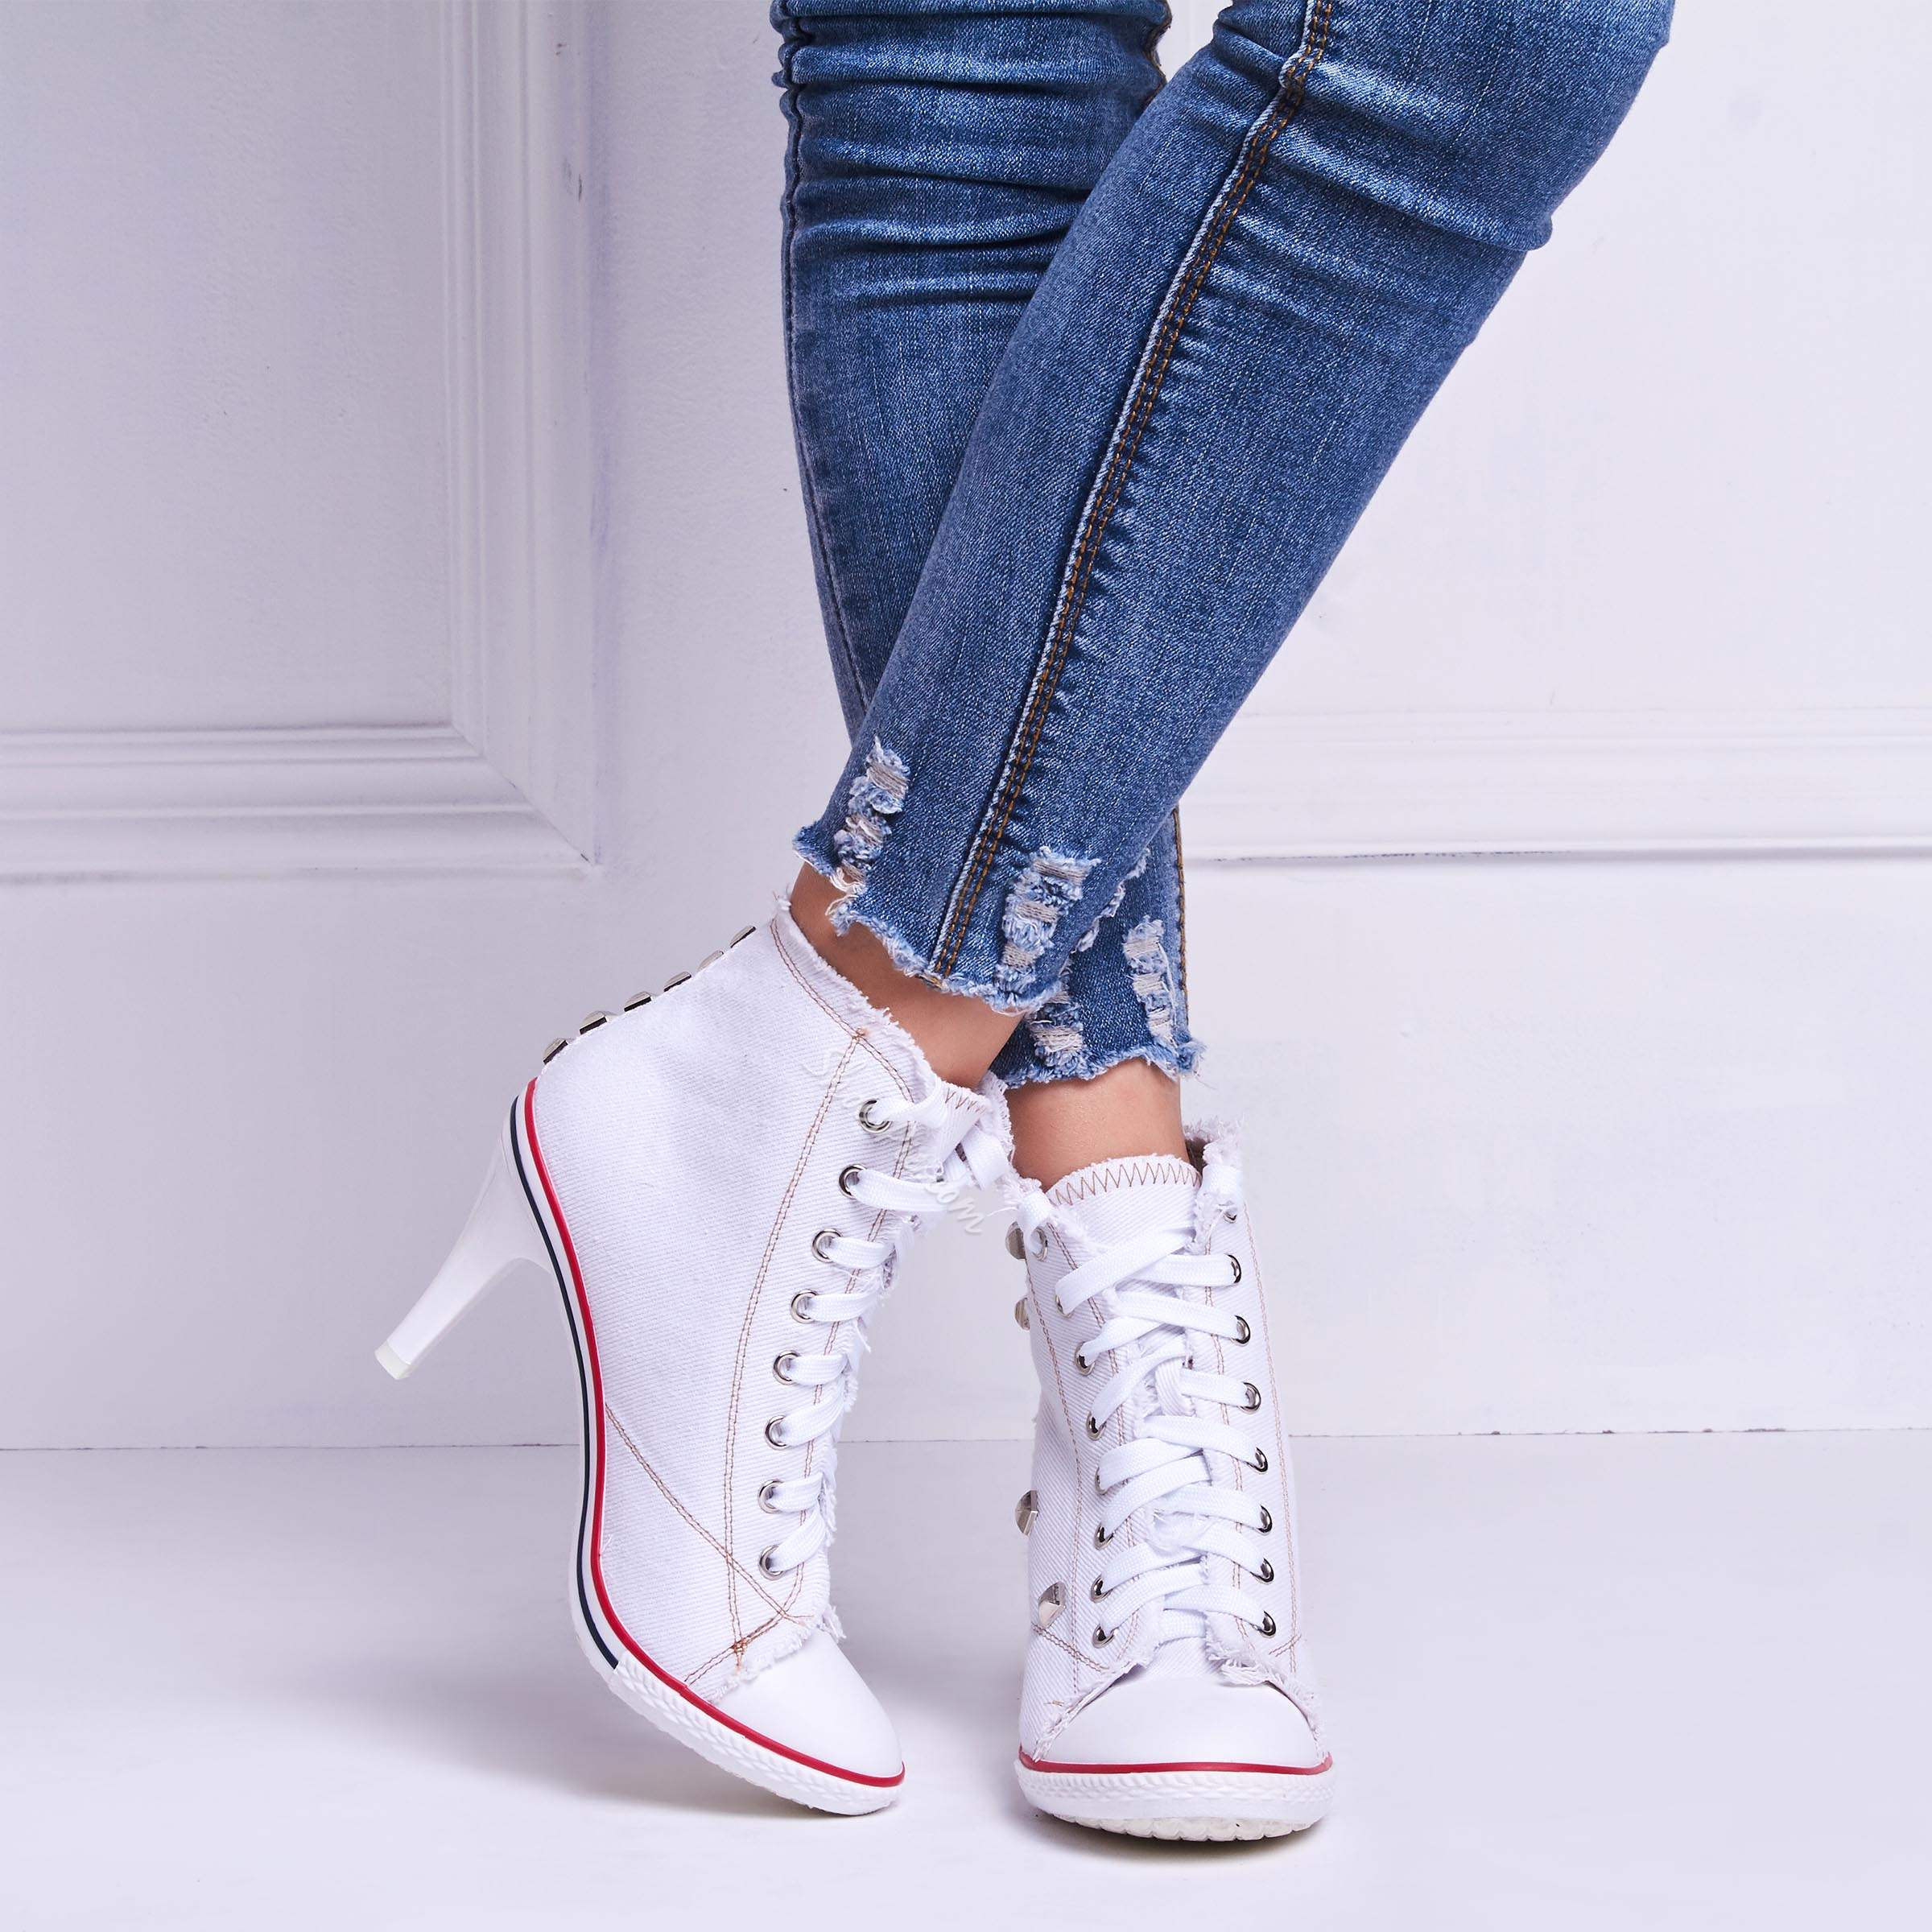 ShoespieCanvas Rivet Lace-Up Stiletto Heel Ankle Boots